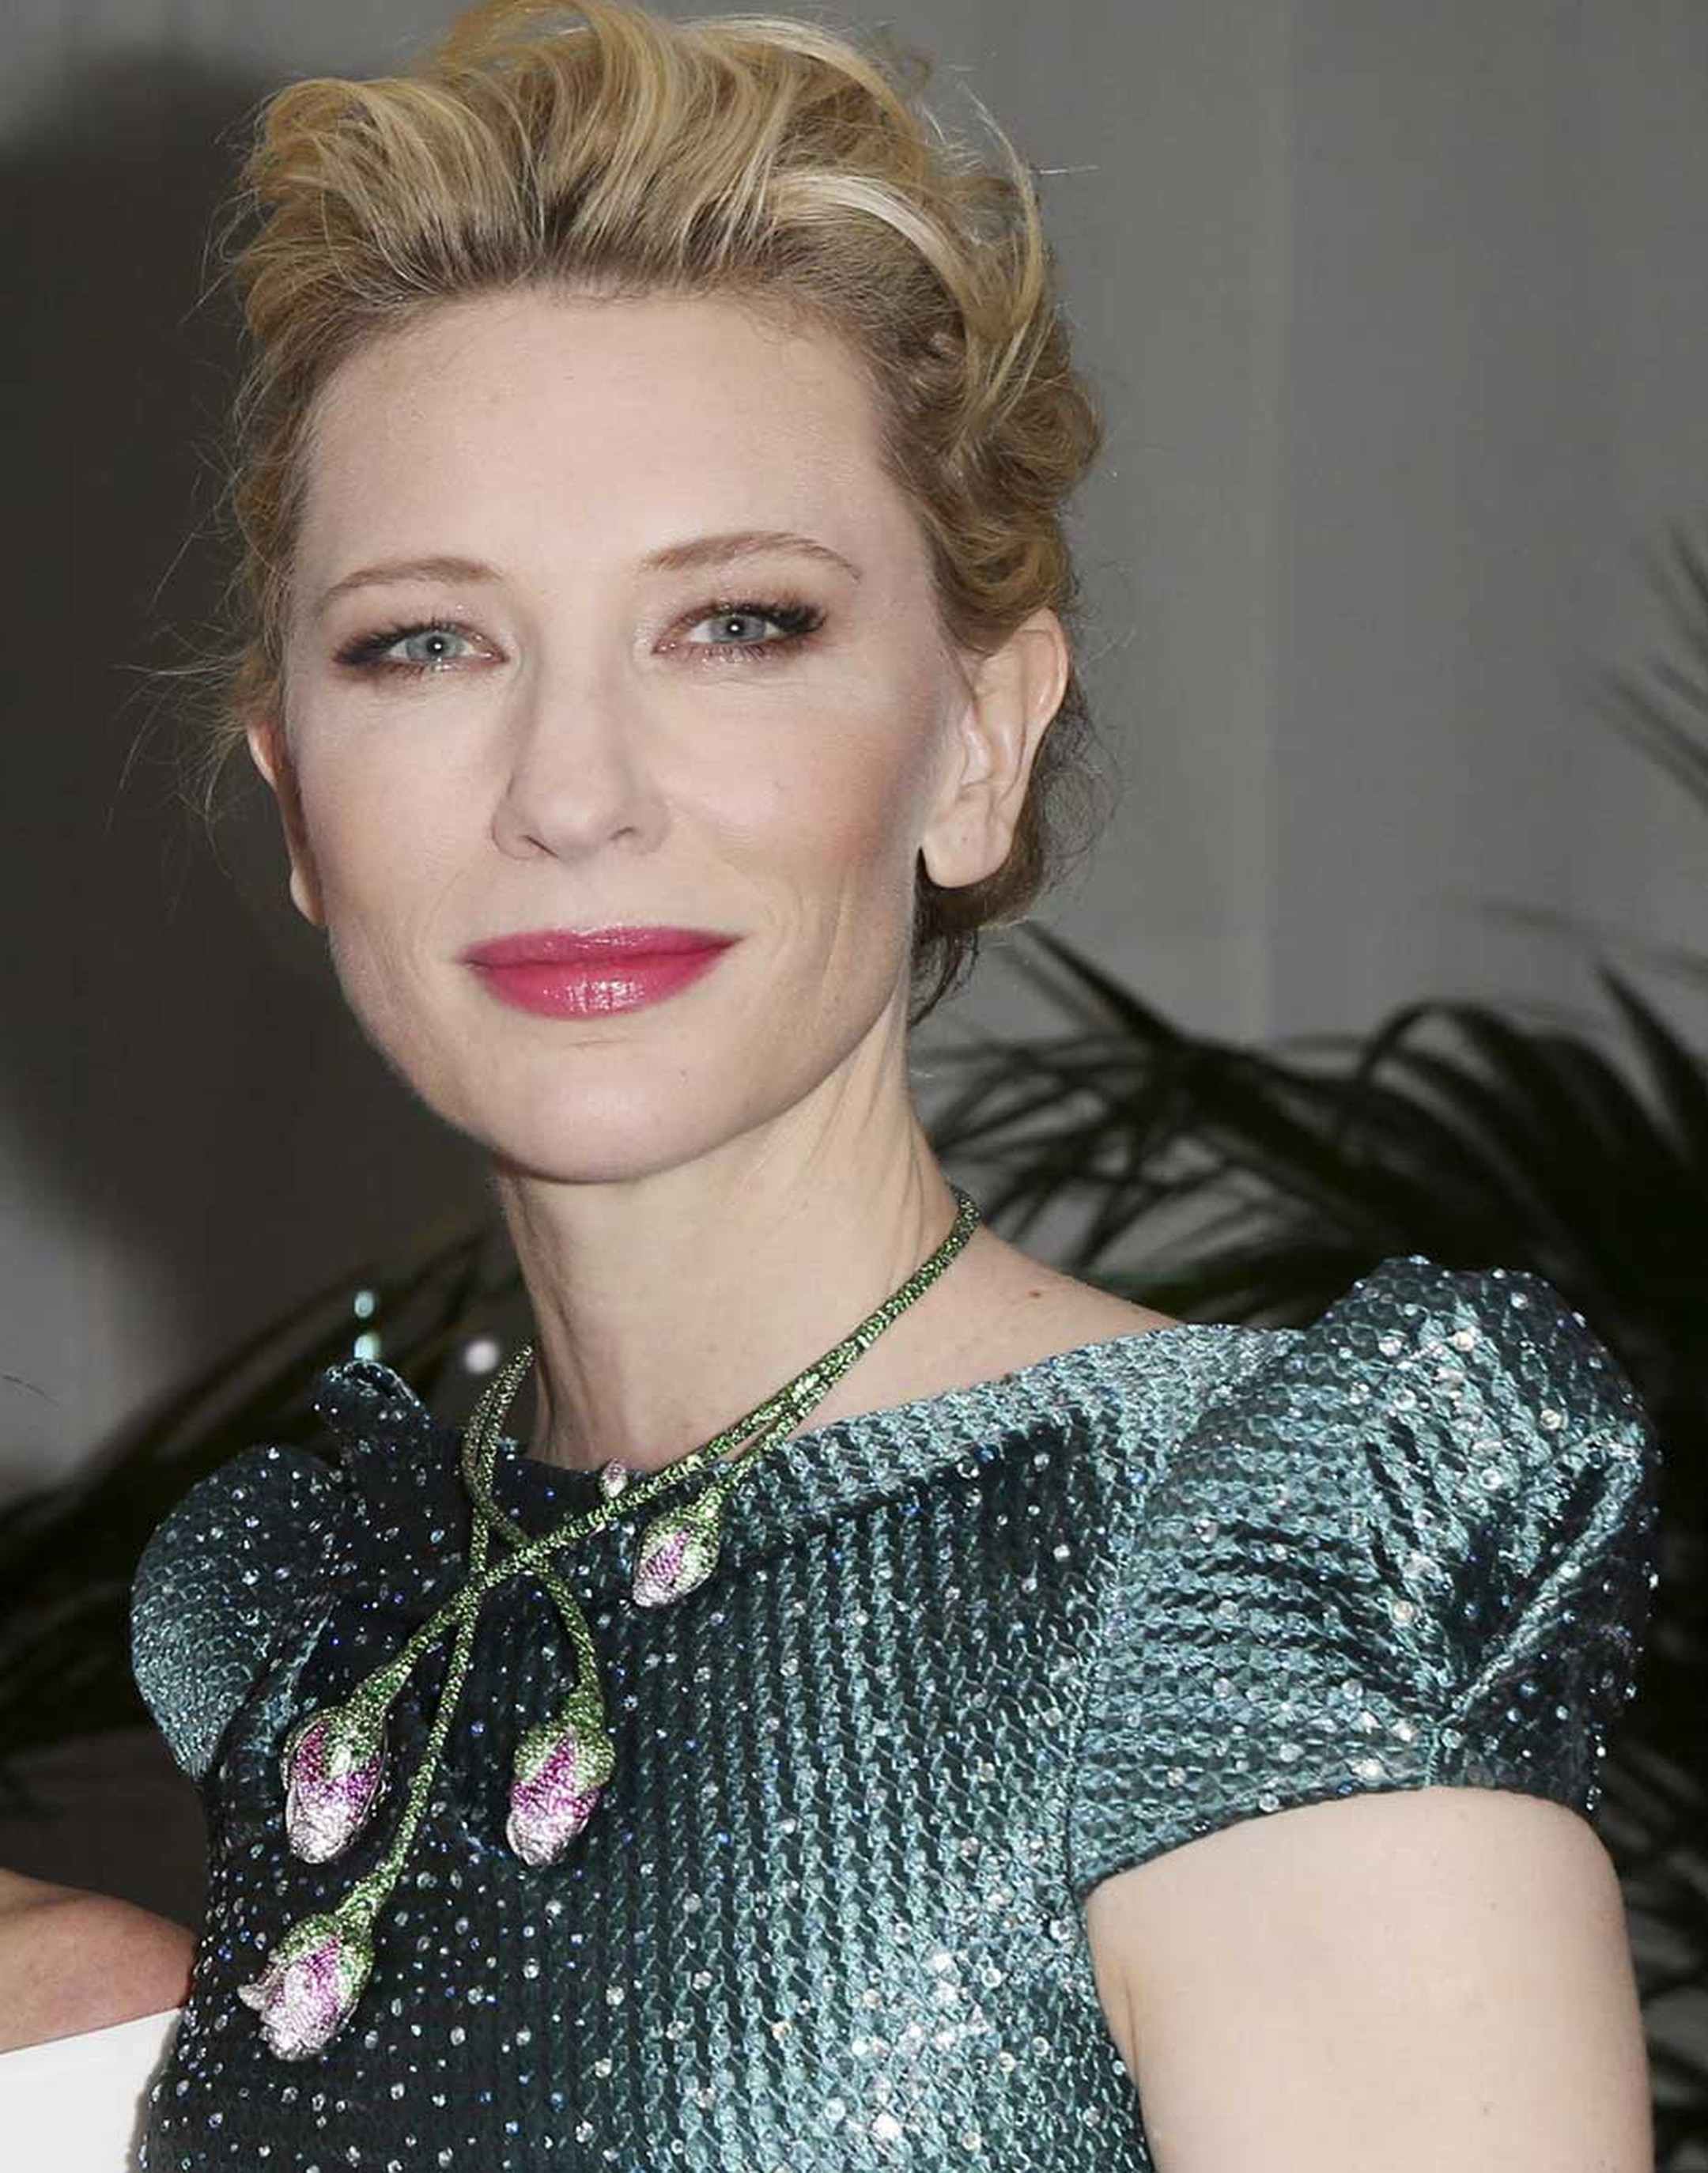 Cate Blanchett arrived at the Trophée Chopard 2014 afterparty in a dress worthy of any red carpet, paired with a tsavorite, pink sapphire and ruby floral necklace from Chopard's Red Carpet collection.